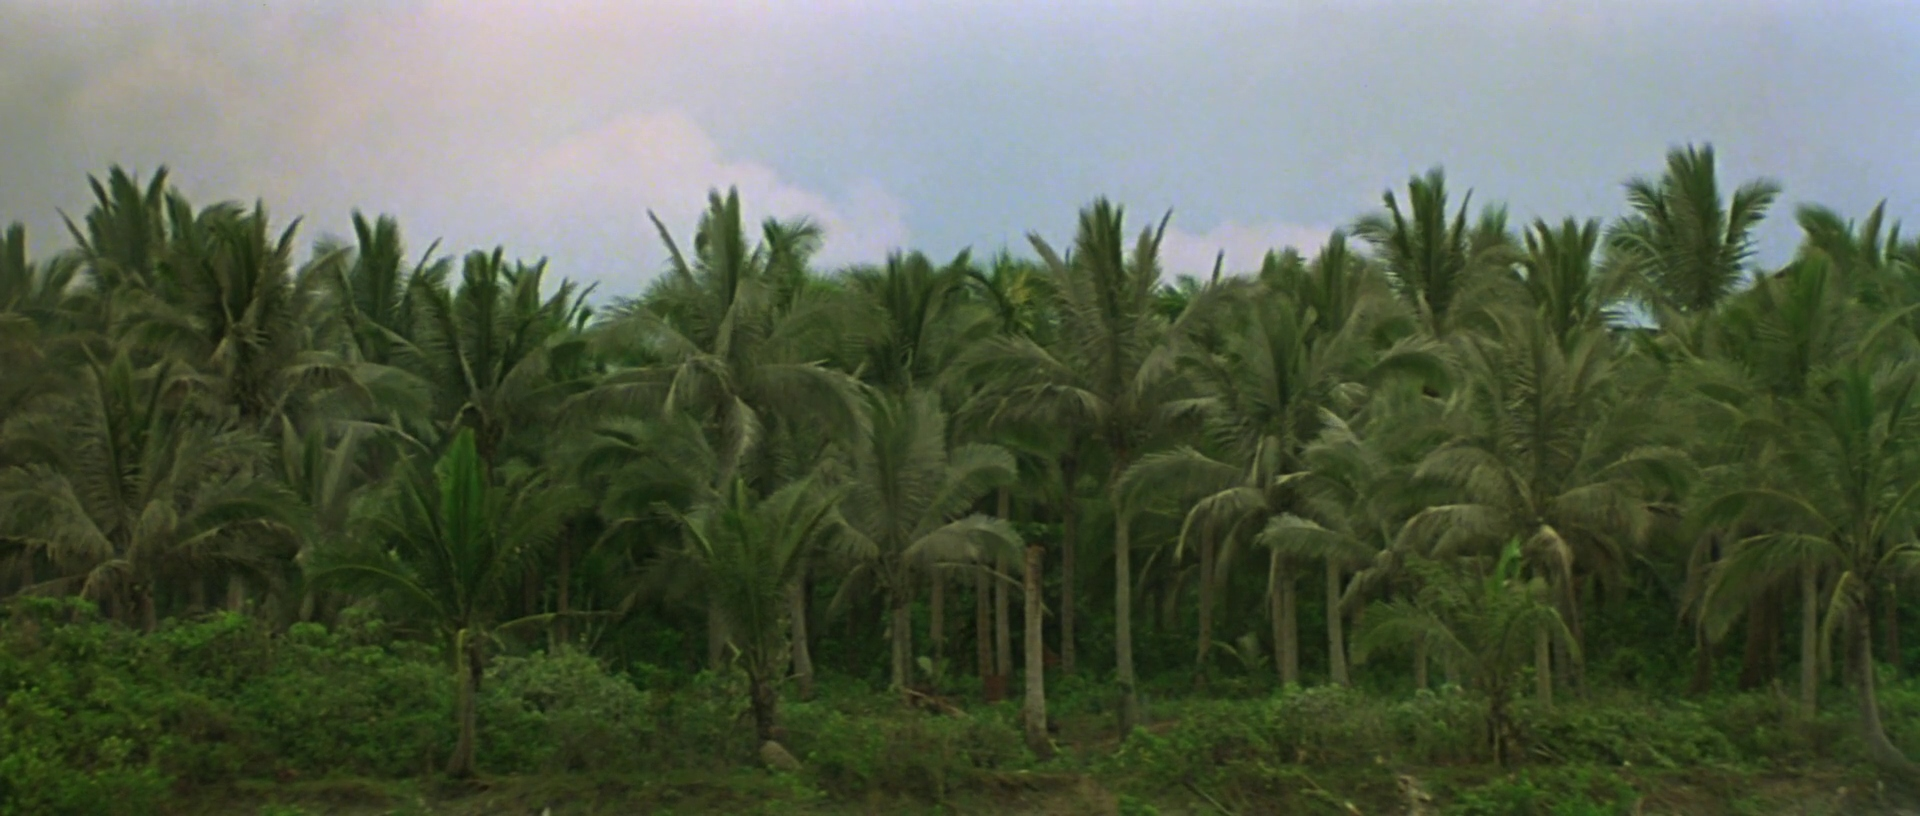 an analysis of cinematography in apocalypse now by francis ford coppola Apocalypse now (1979) is producer  best cinematography (vittorio  in fact apocalypse now, directed by francis ford coppola and.